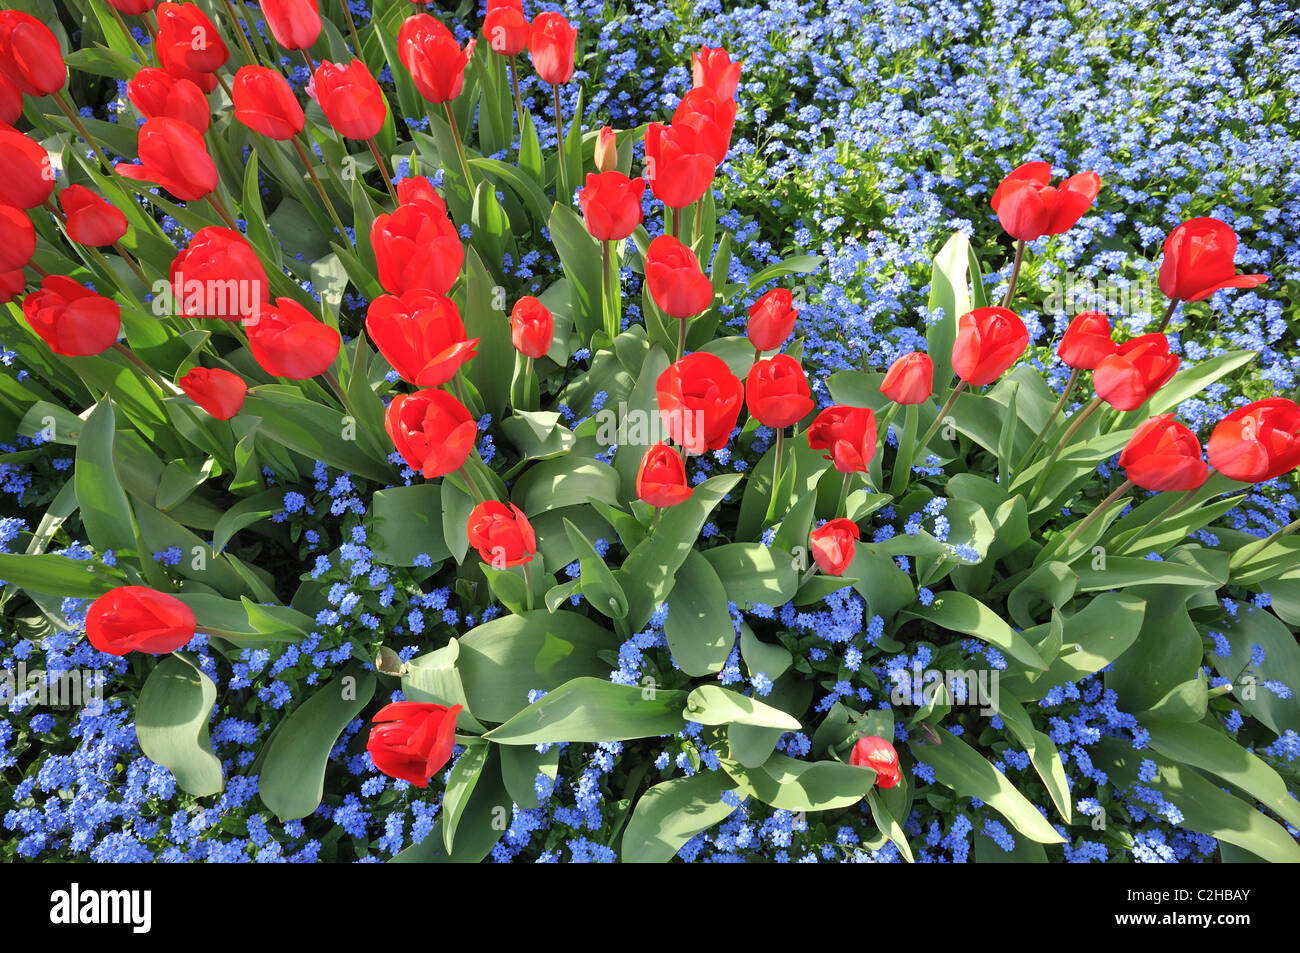 Tiny blue flowers stock photos tiny blue flowers stock images alamy red tulips latin name tulipa and tiny blue flowers forget me not izmirmasajfo